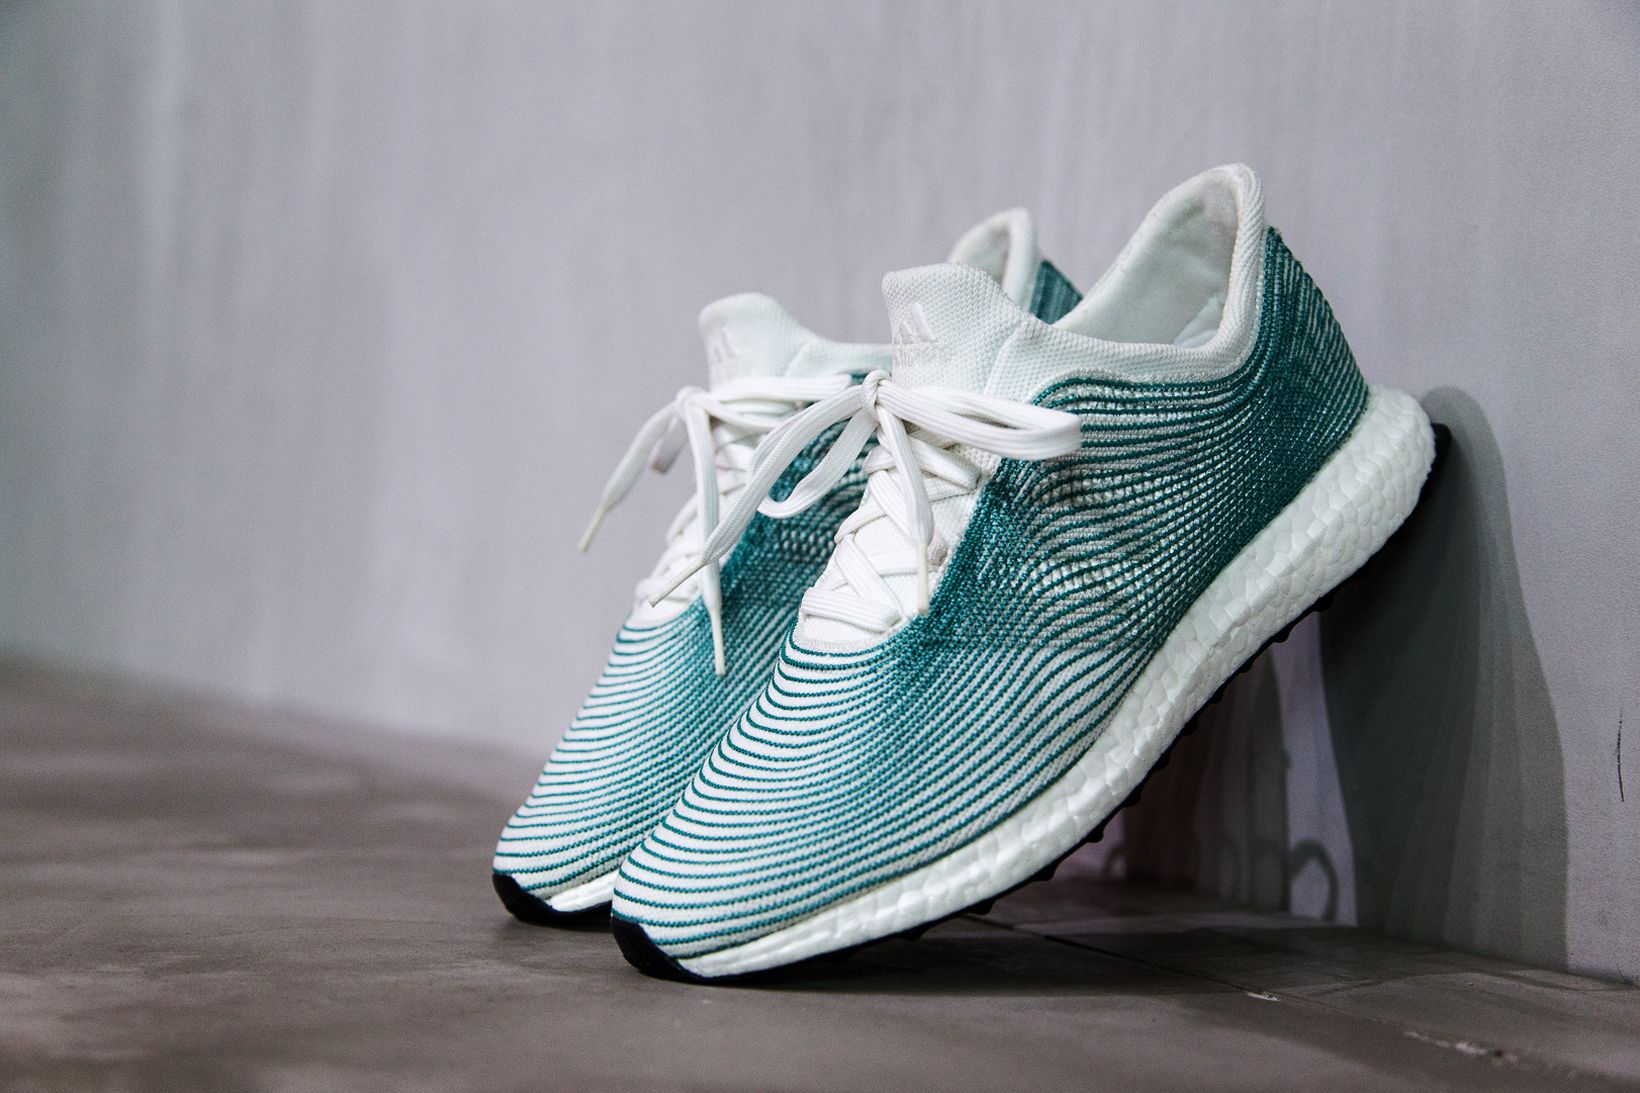 ba68672c10985 A Closer Look at the Parley x adidas Collaboration for World Oceans Day